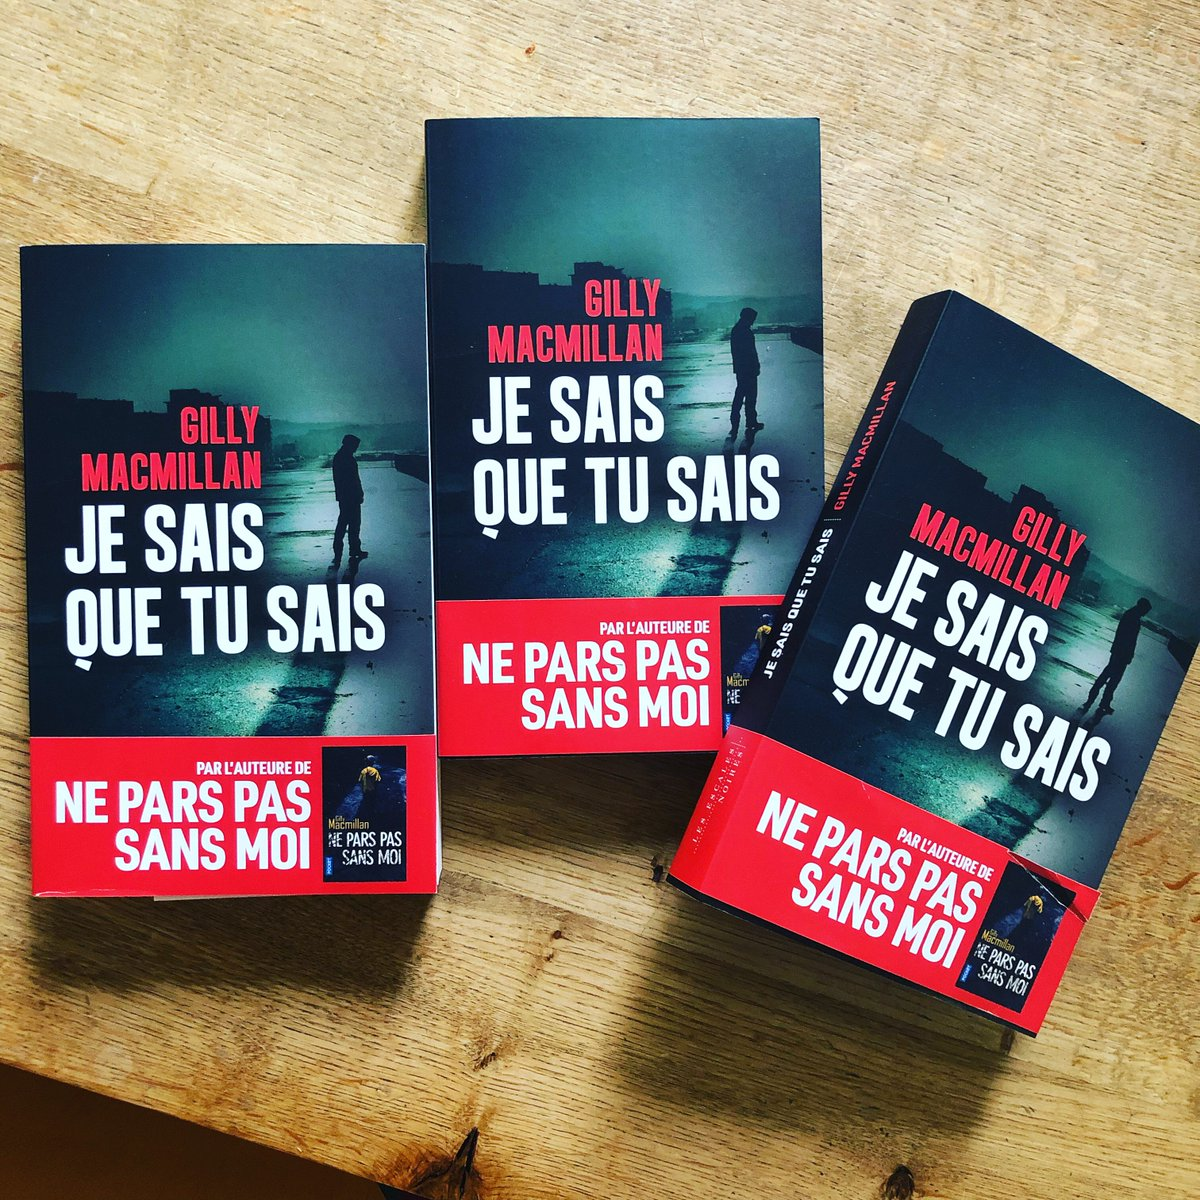 Wonderful French editions of @GillyMacmillan #IKnowYouKnow published by @LesEscales